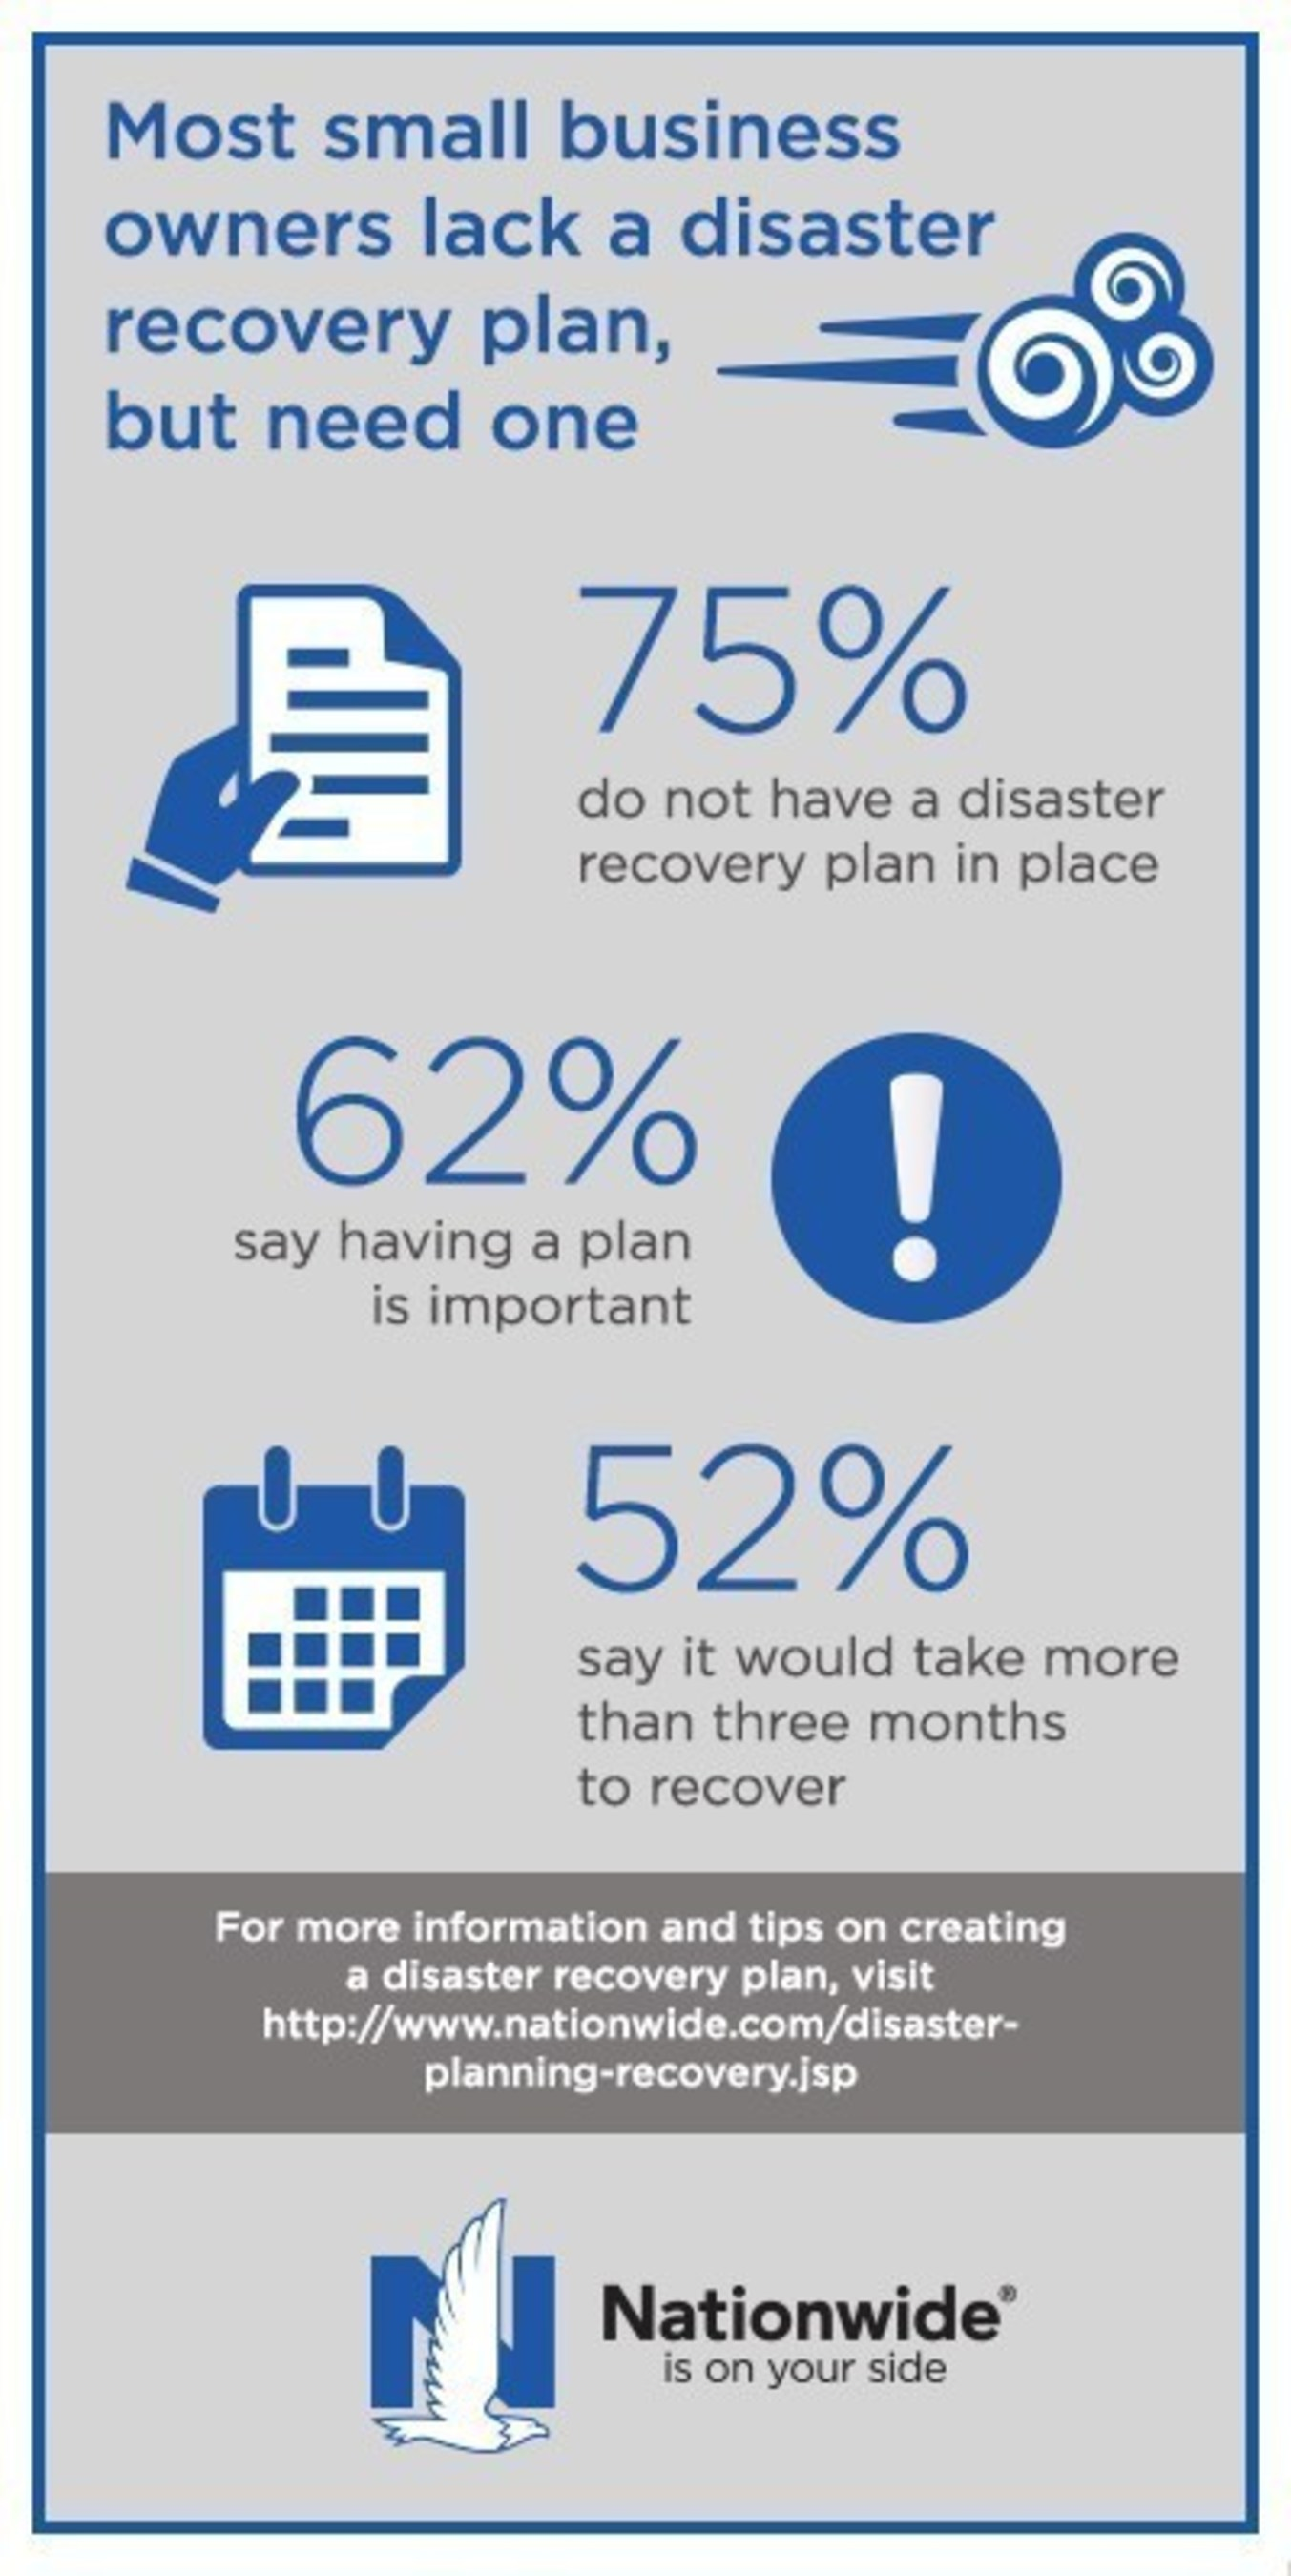 Most small-business owners lack a disaster recovery plan, but need one.